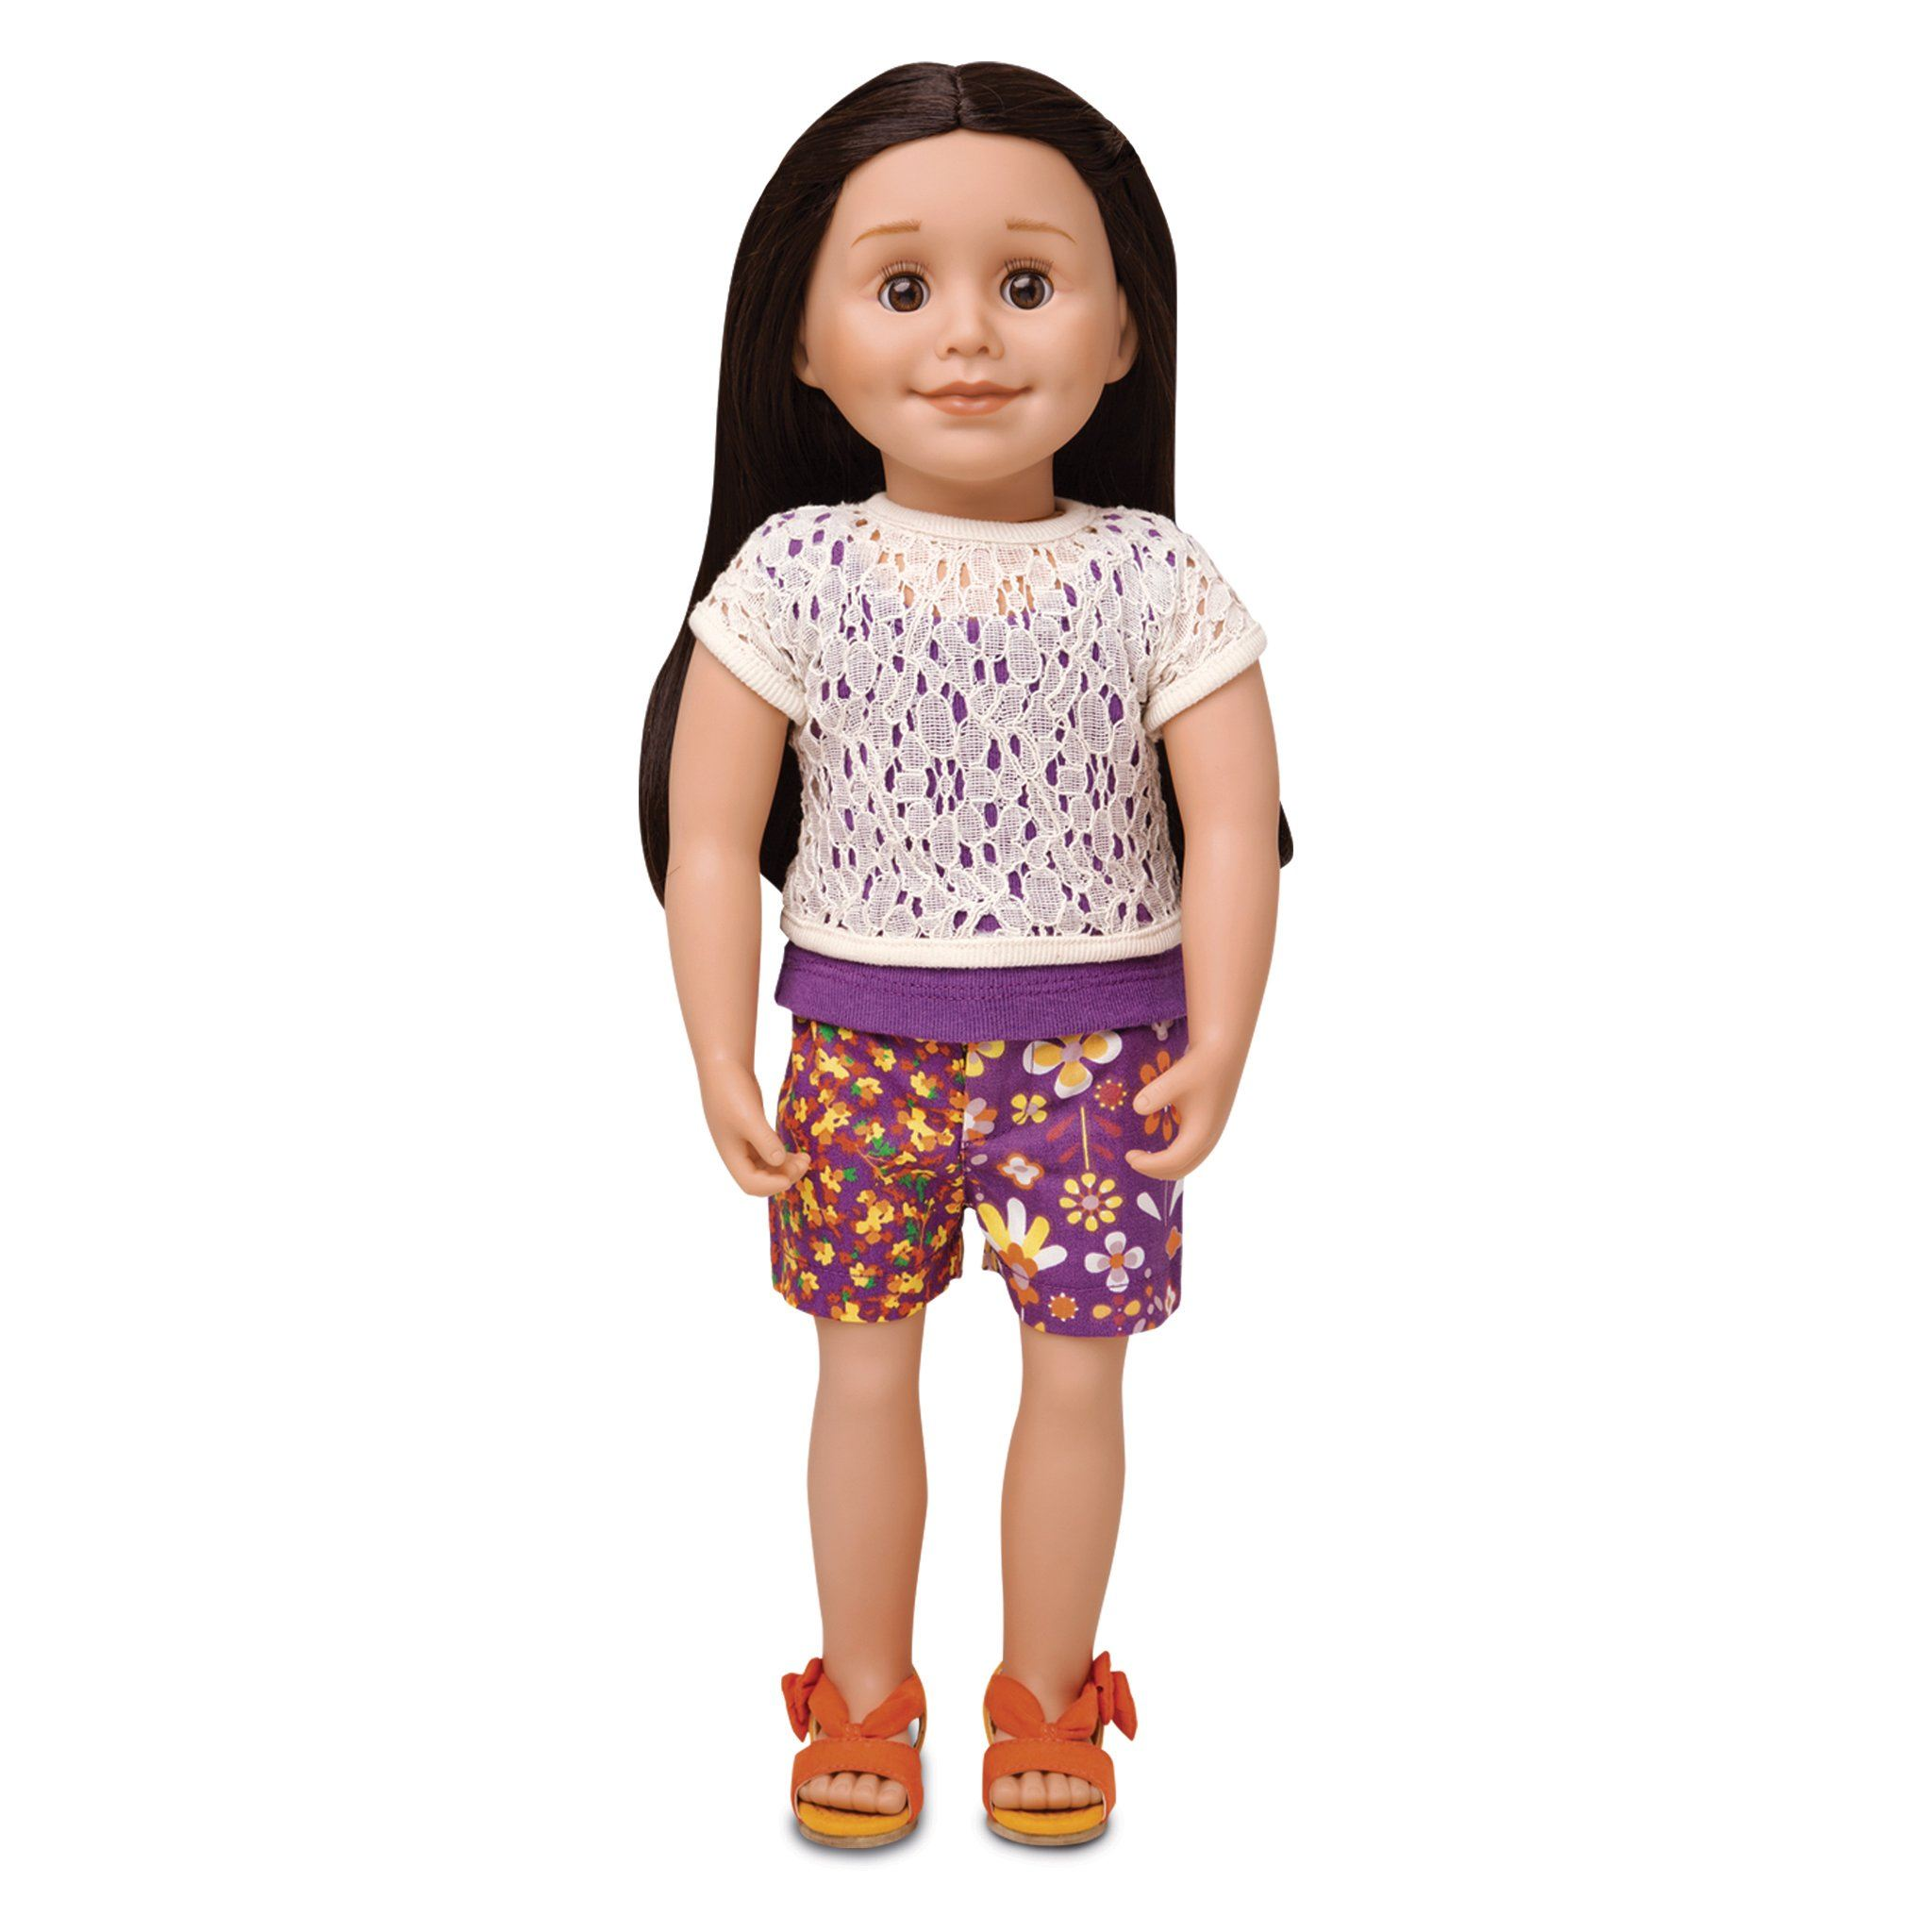 Purple multi-colour floral shorts, two layer tank top and orange bow sandals shown on 18 inch doll.